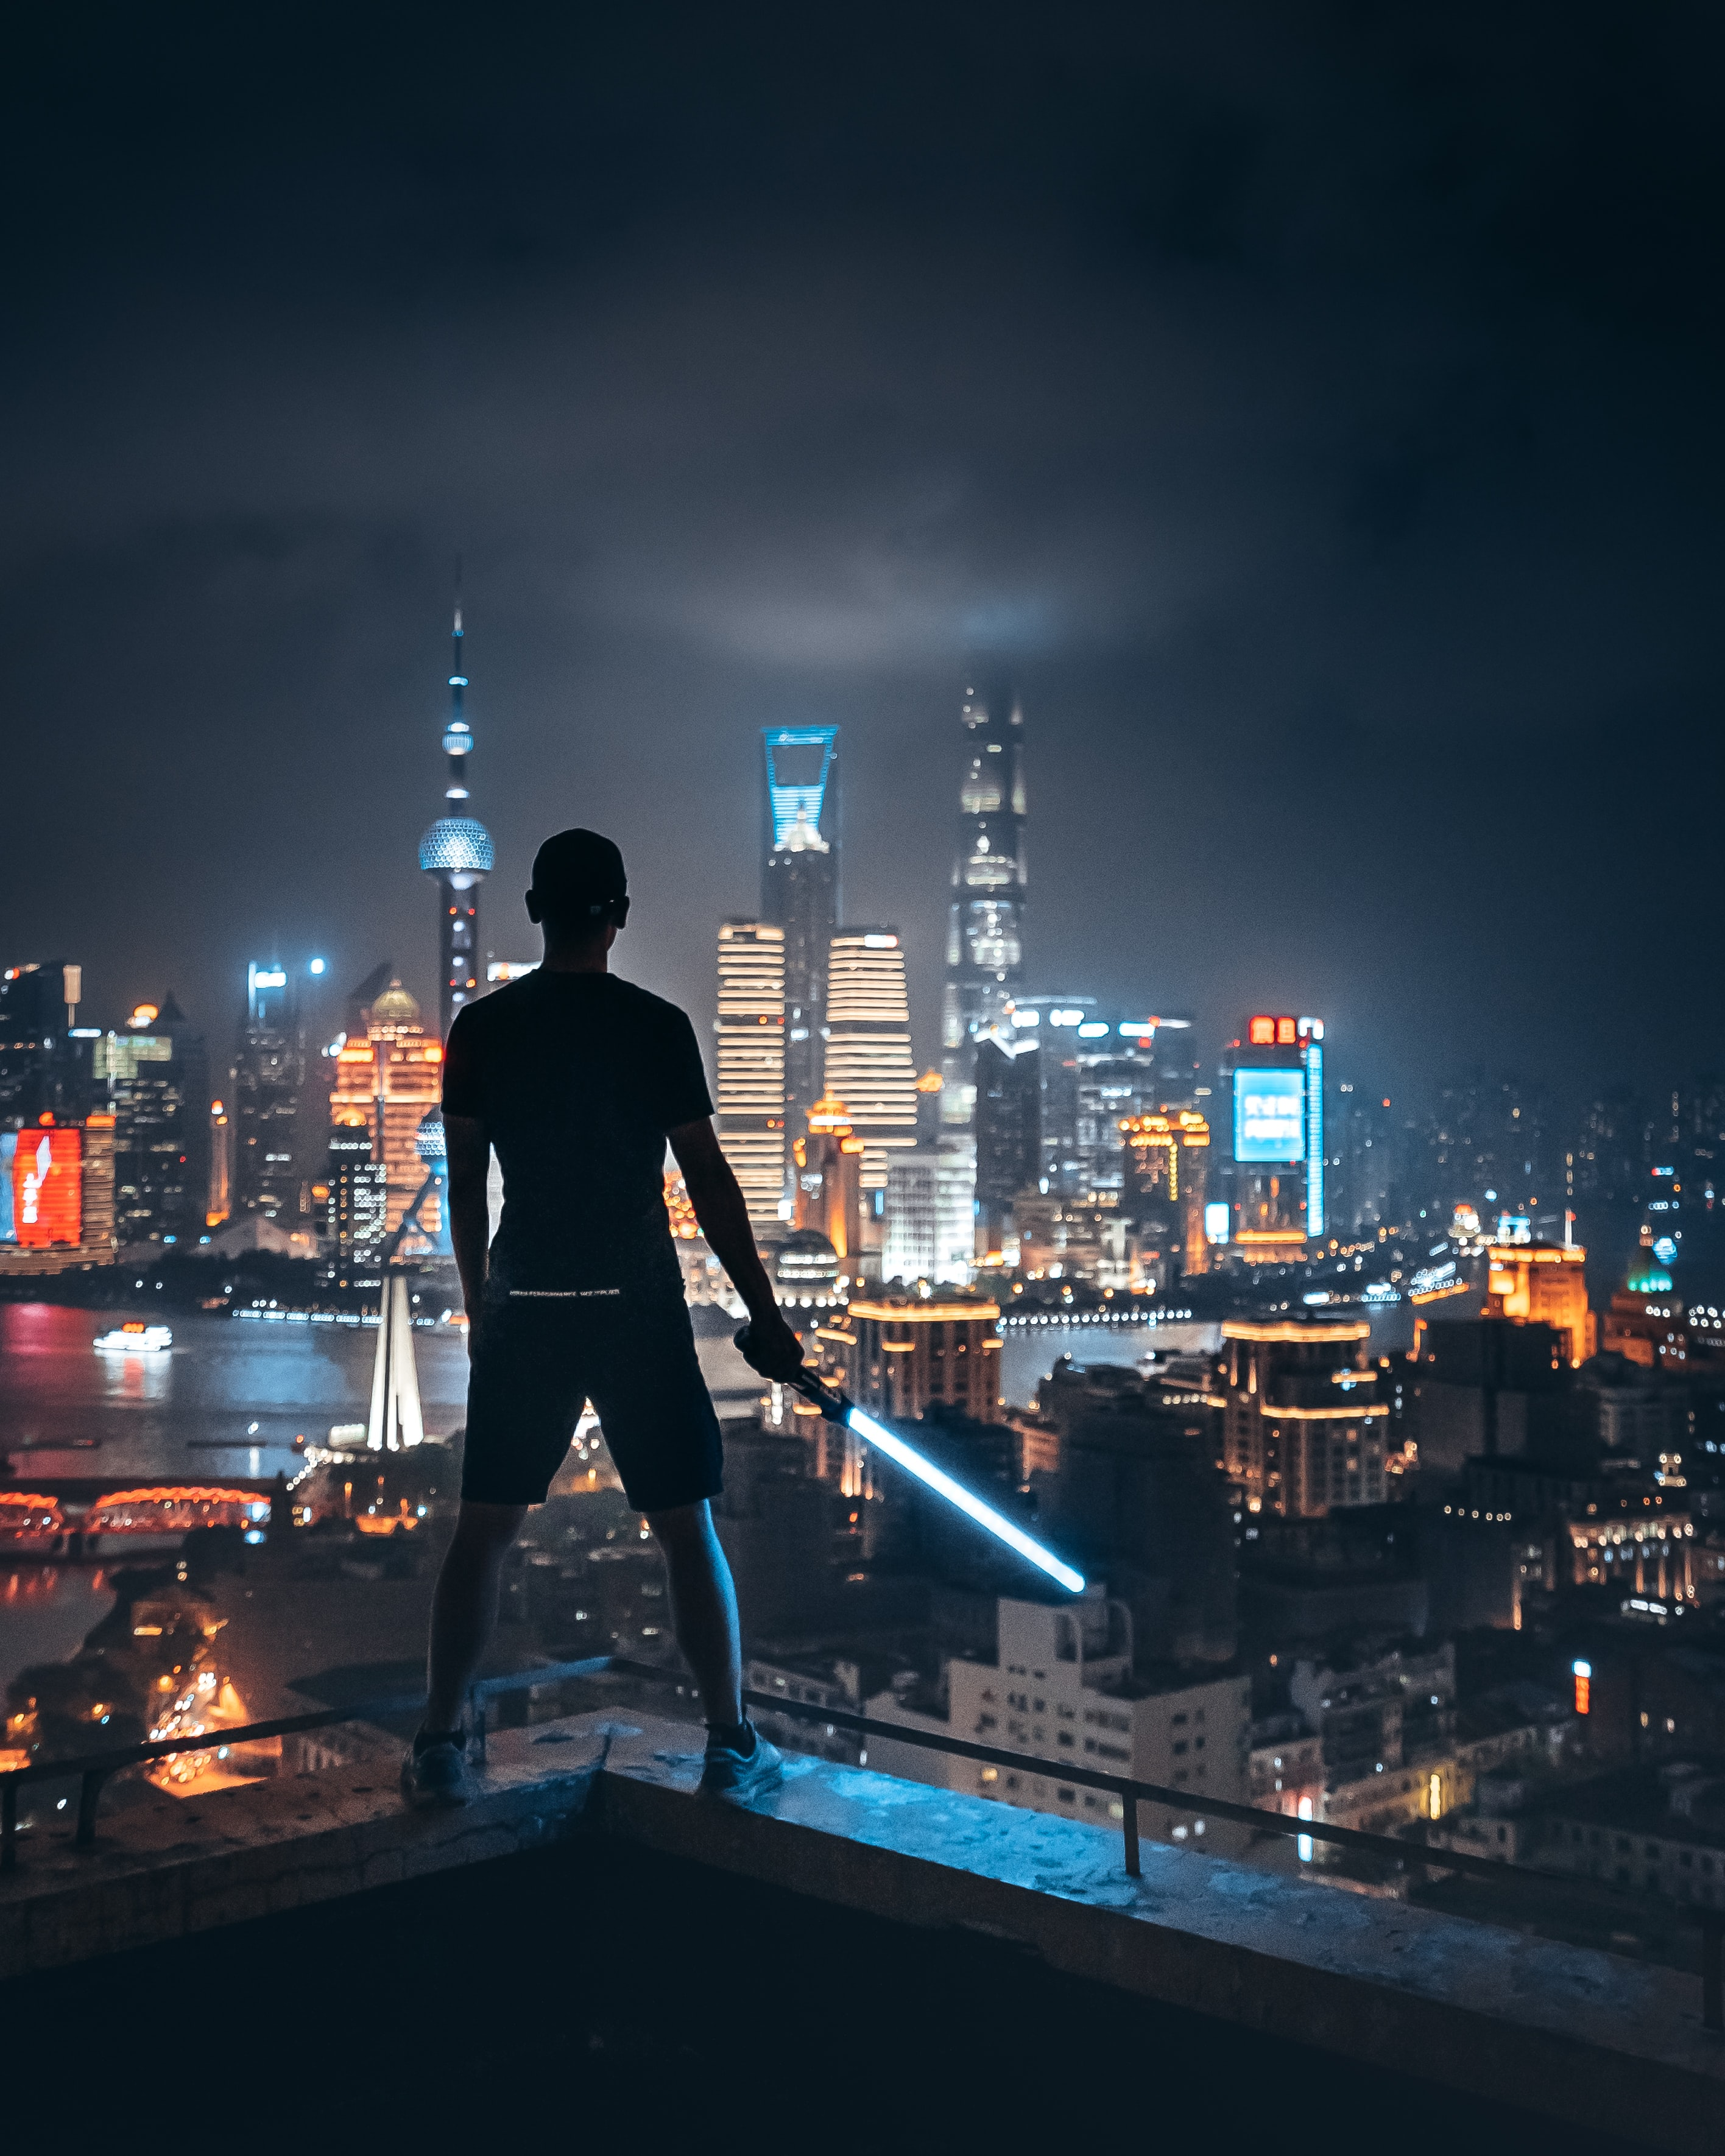 man holding lightsaber while standing on ledge overlooking city